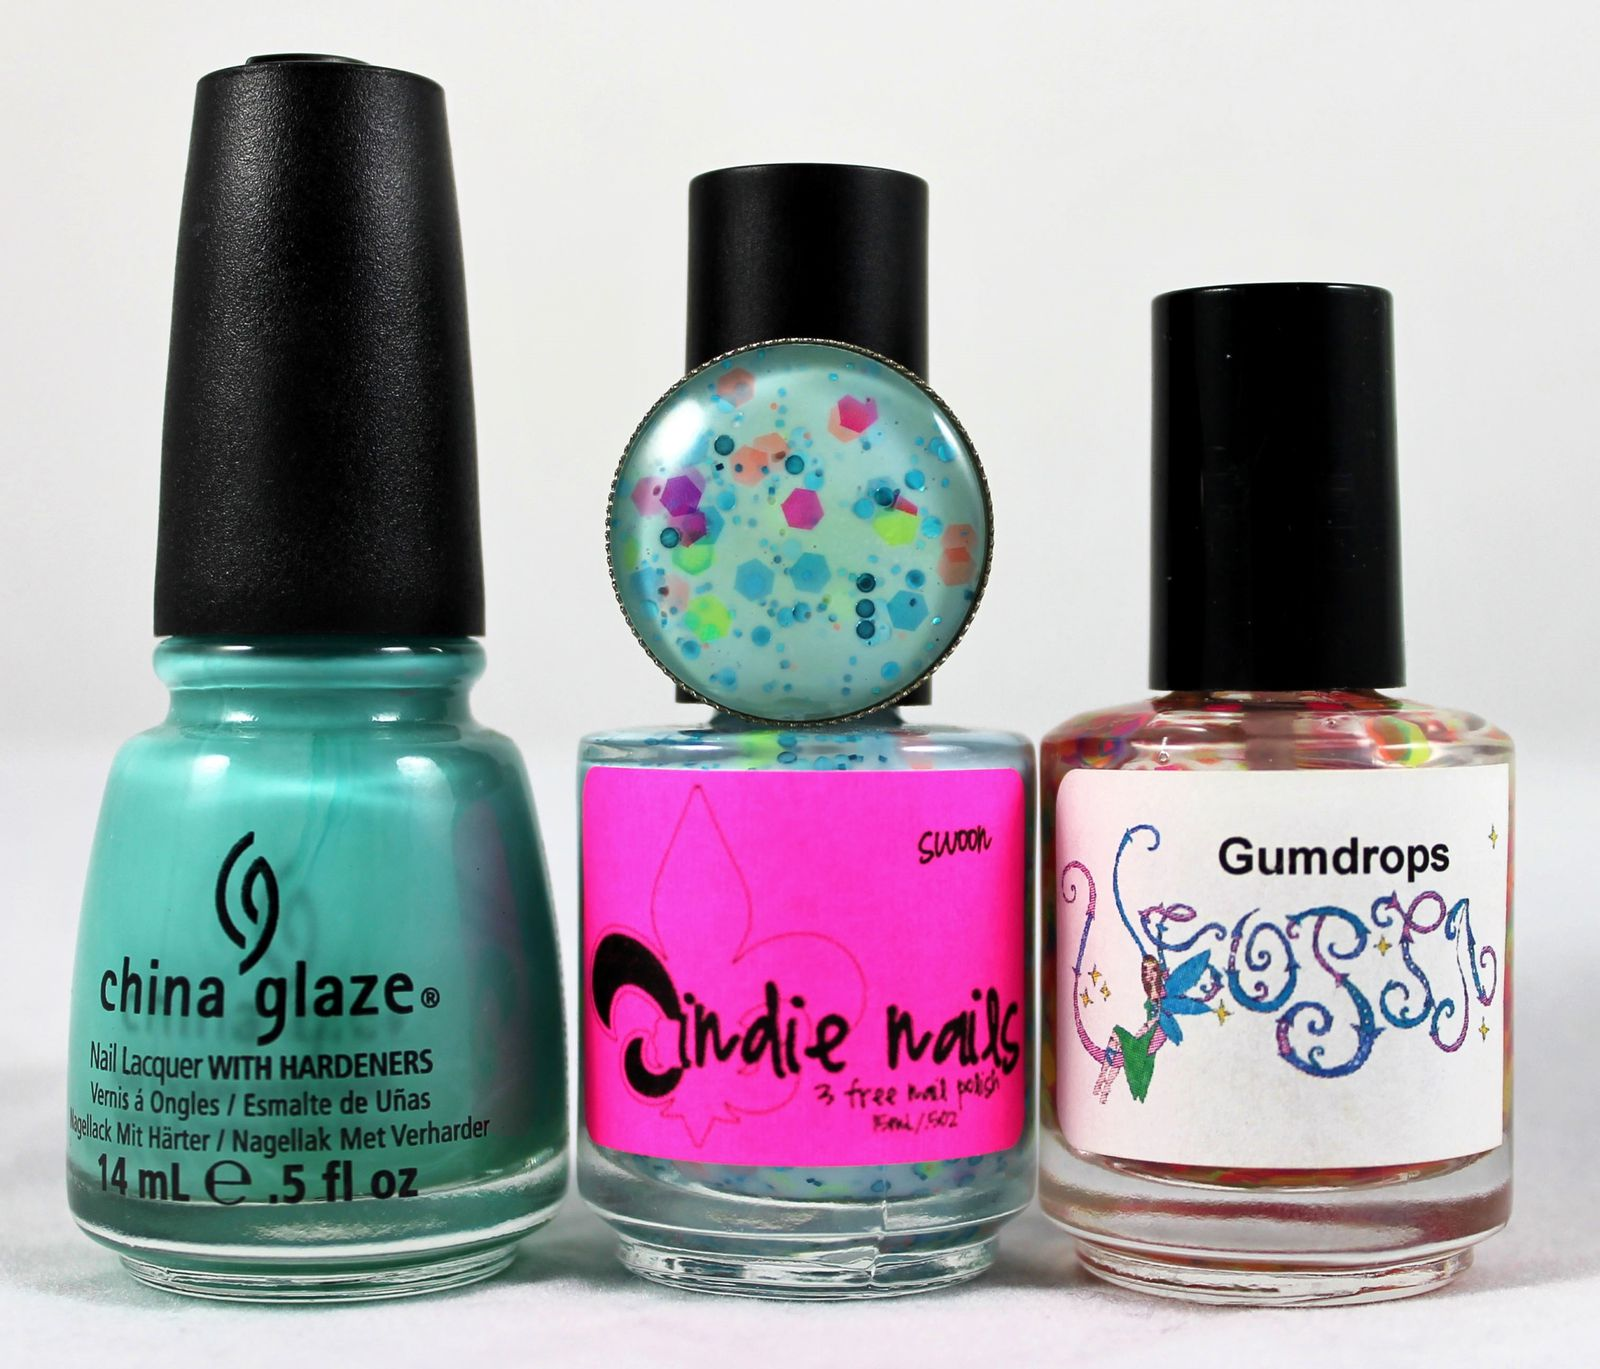 Peel-Off Base / Revlon Quick dry base coat / China Glaze Aquadelic / Jindie Nails Swoon / Utopia Gumdrops / Nail Pattern Boldness Glitter Food / Poshe Top Coat